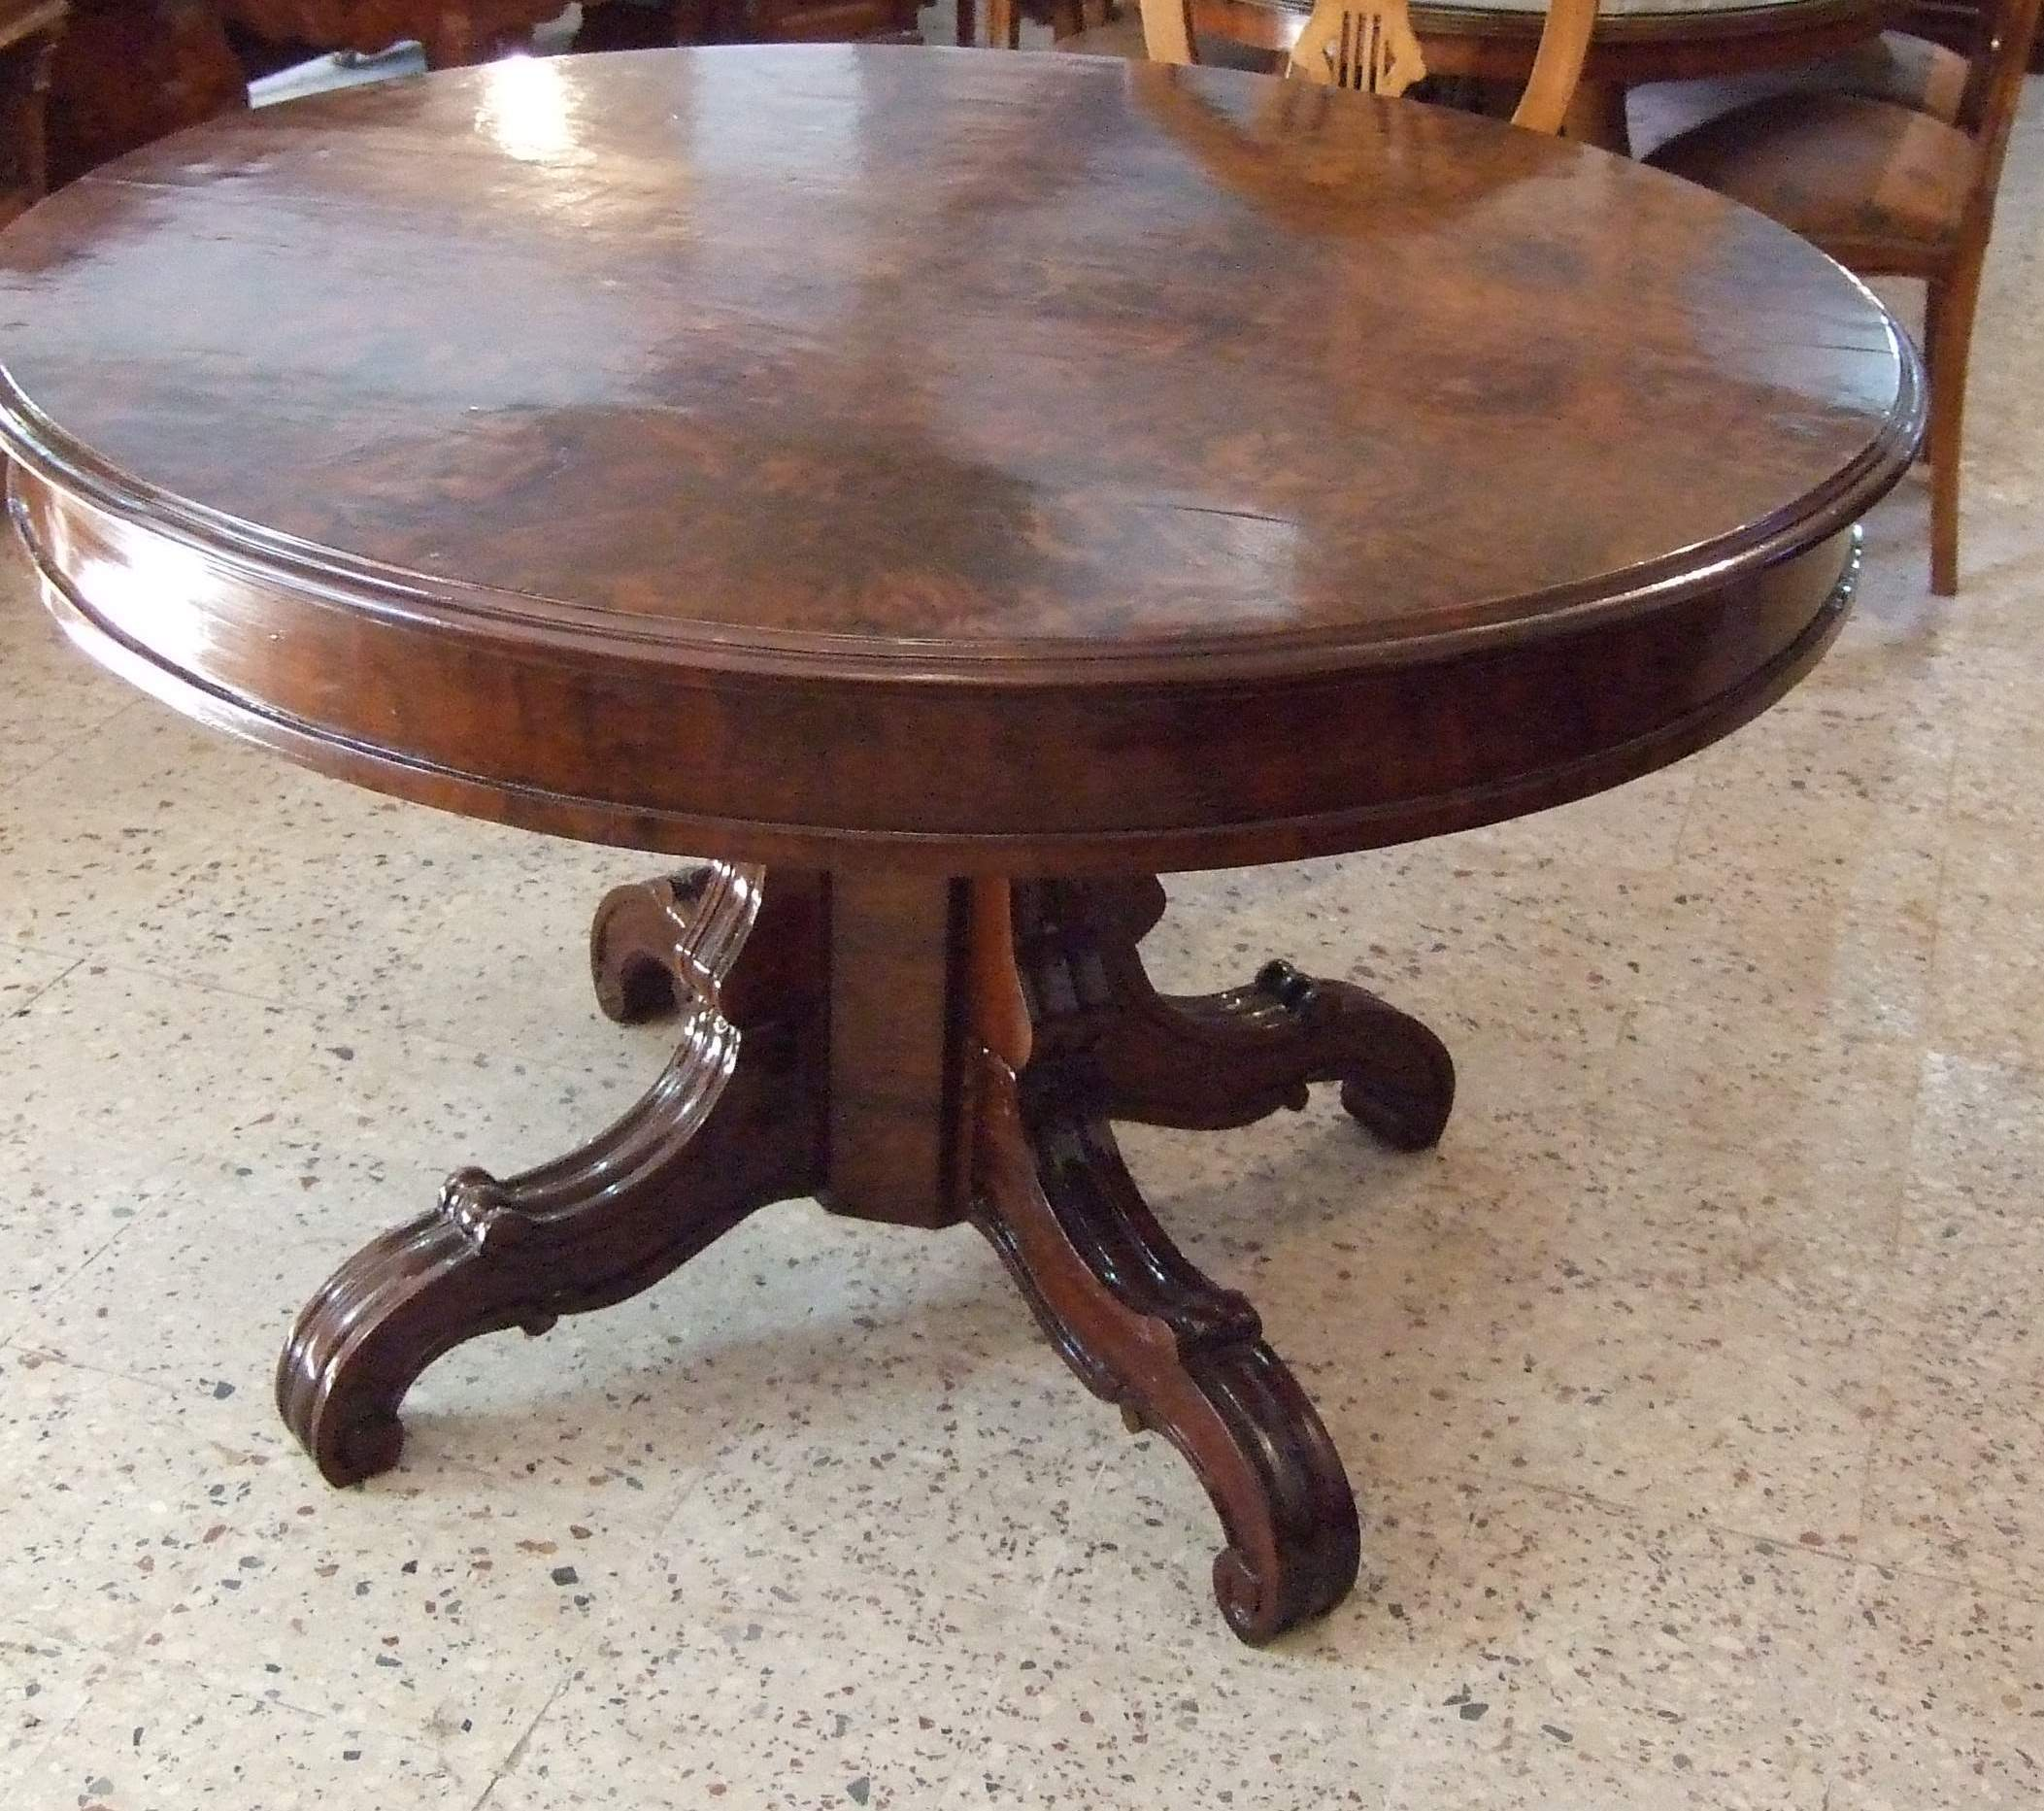 Beech Wood Victorian English Style Center Table